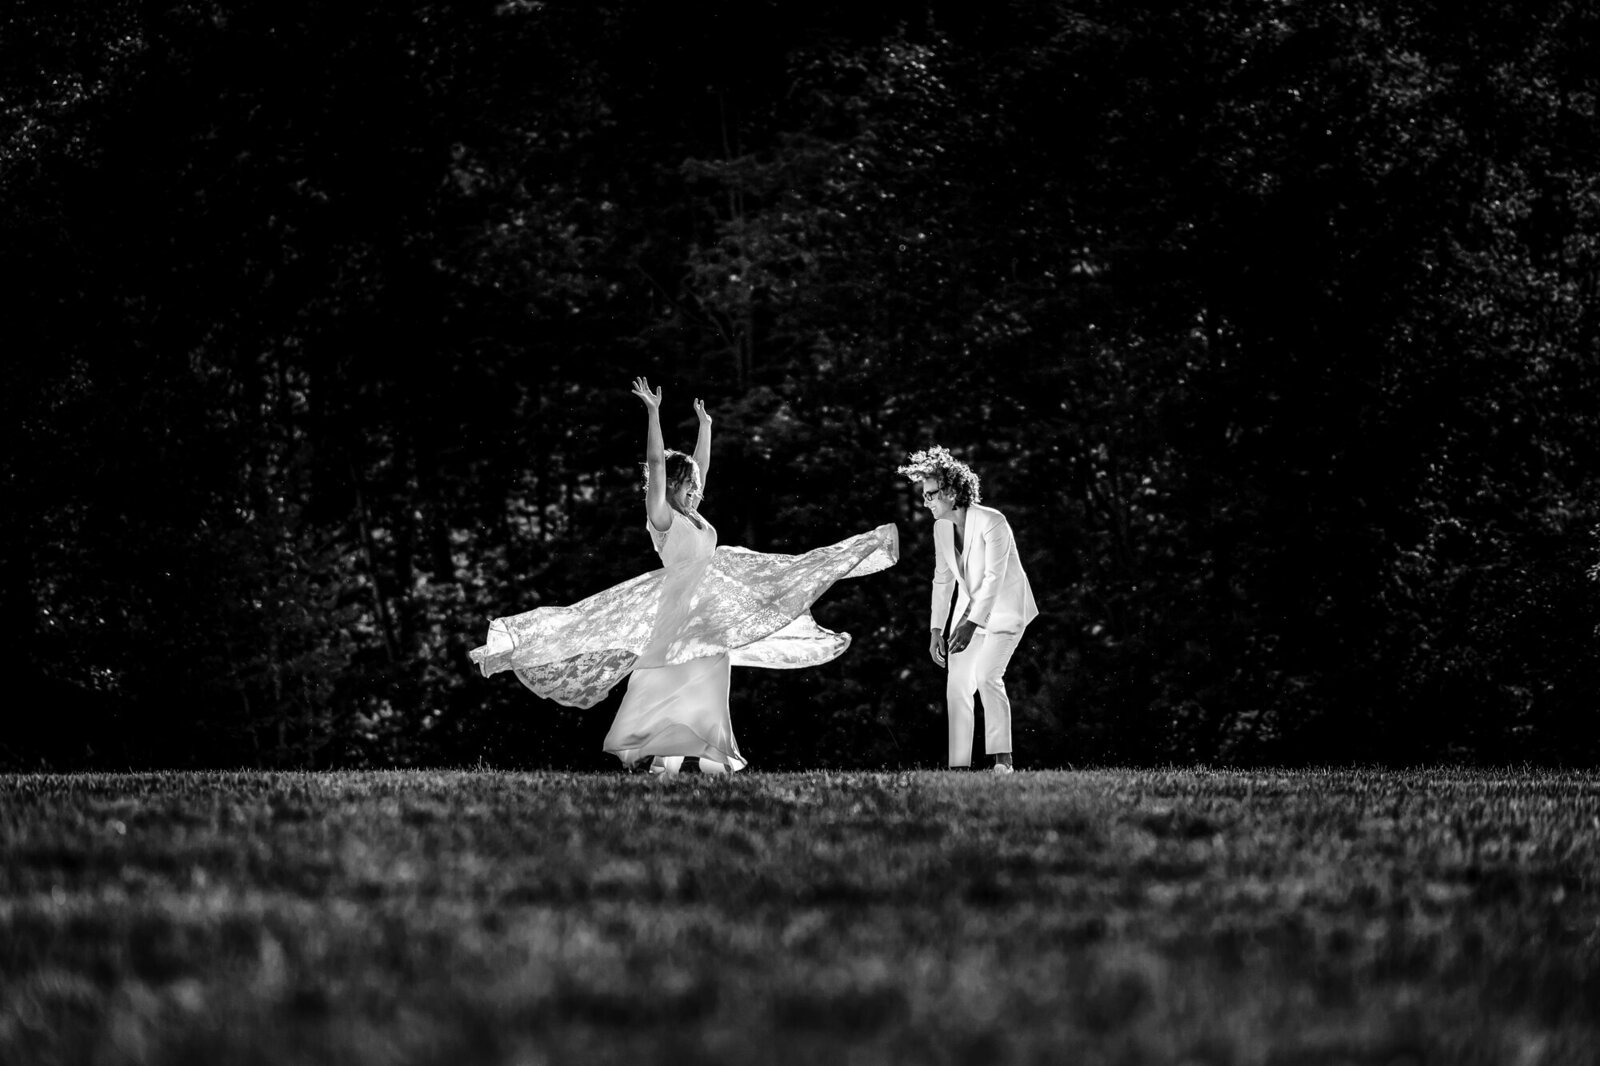 Two brides in a black and white photo dancing in an open field together. Hillary Stirling, NYC Chef flings her hair forward in laughter. Electric Love Studios is a  Lesbian owned business buy two wives.